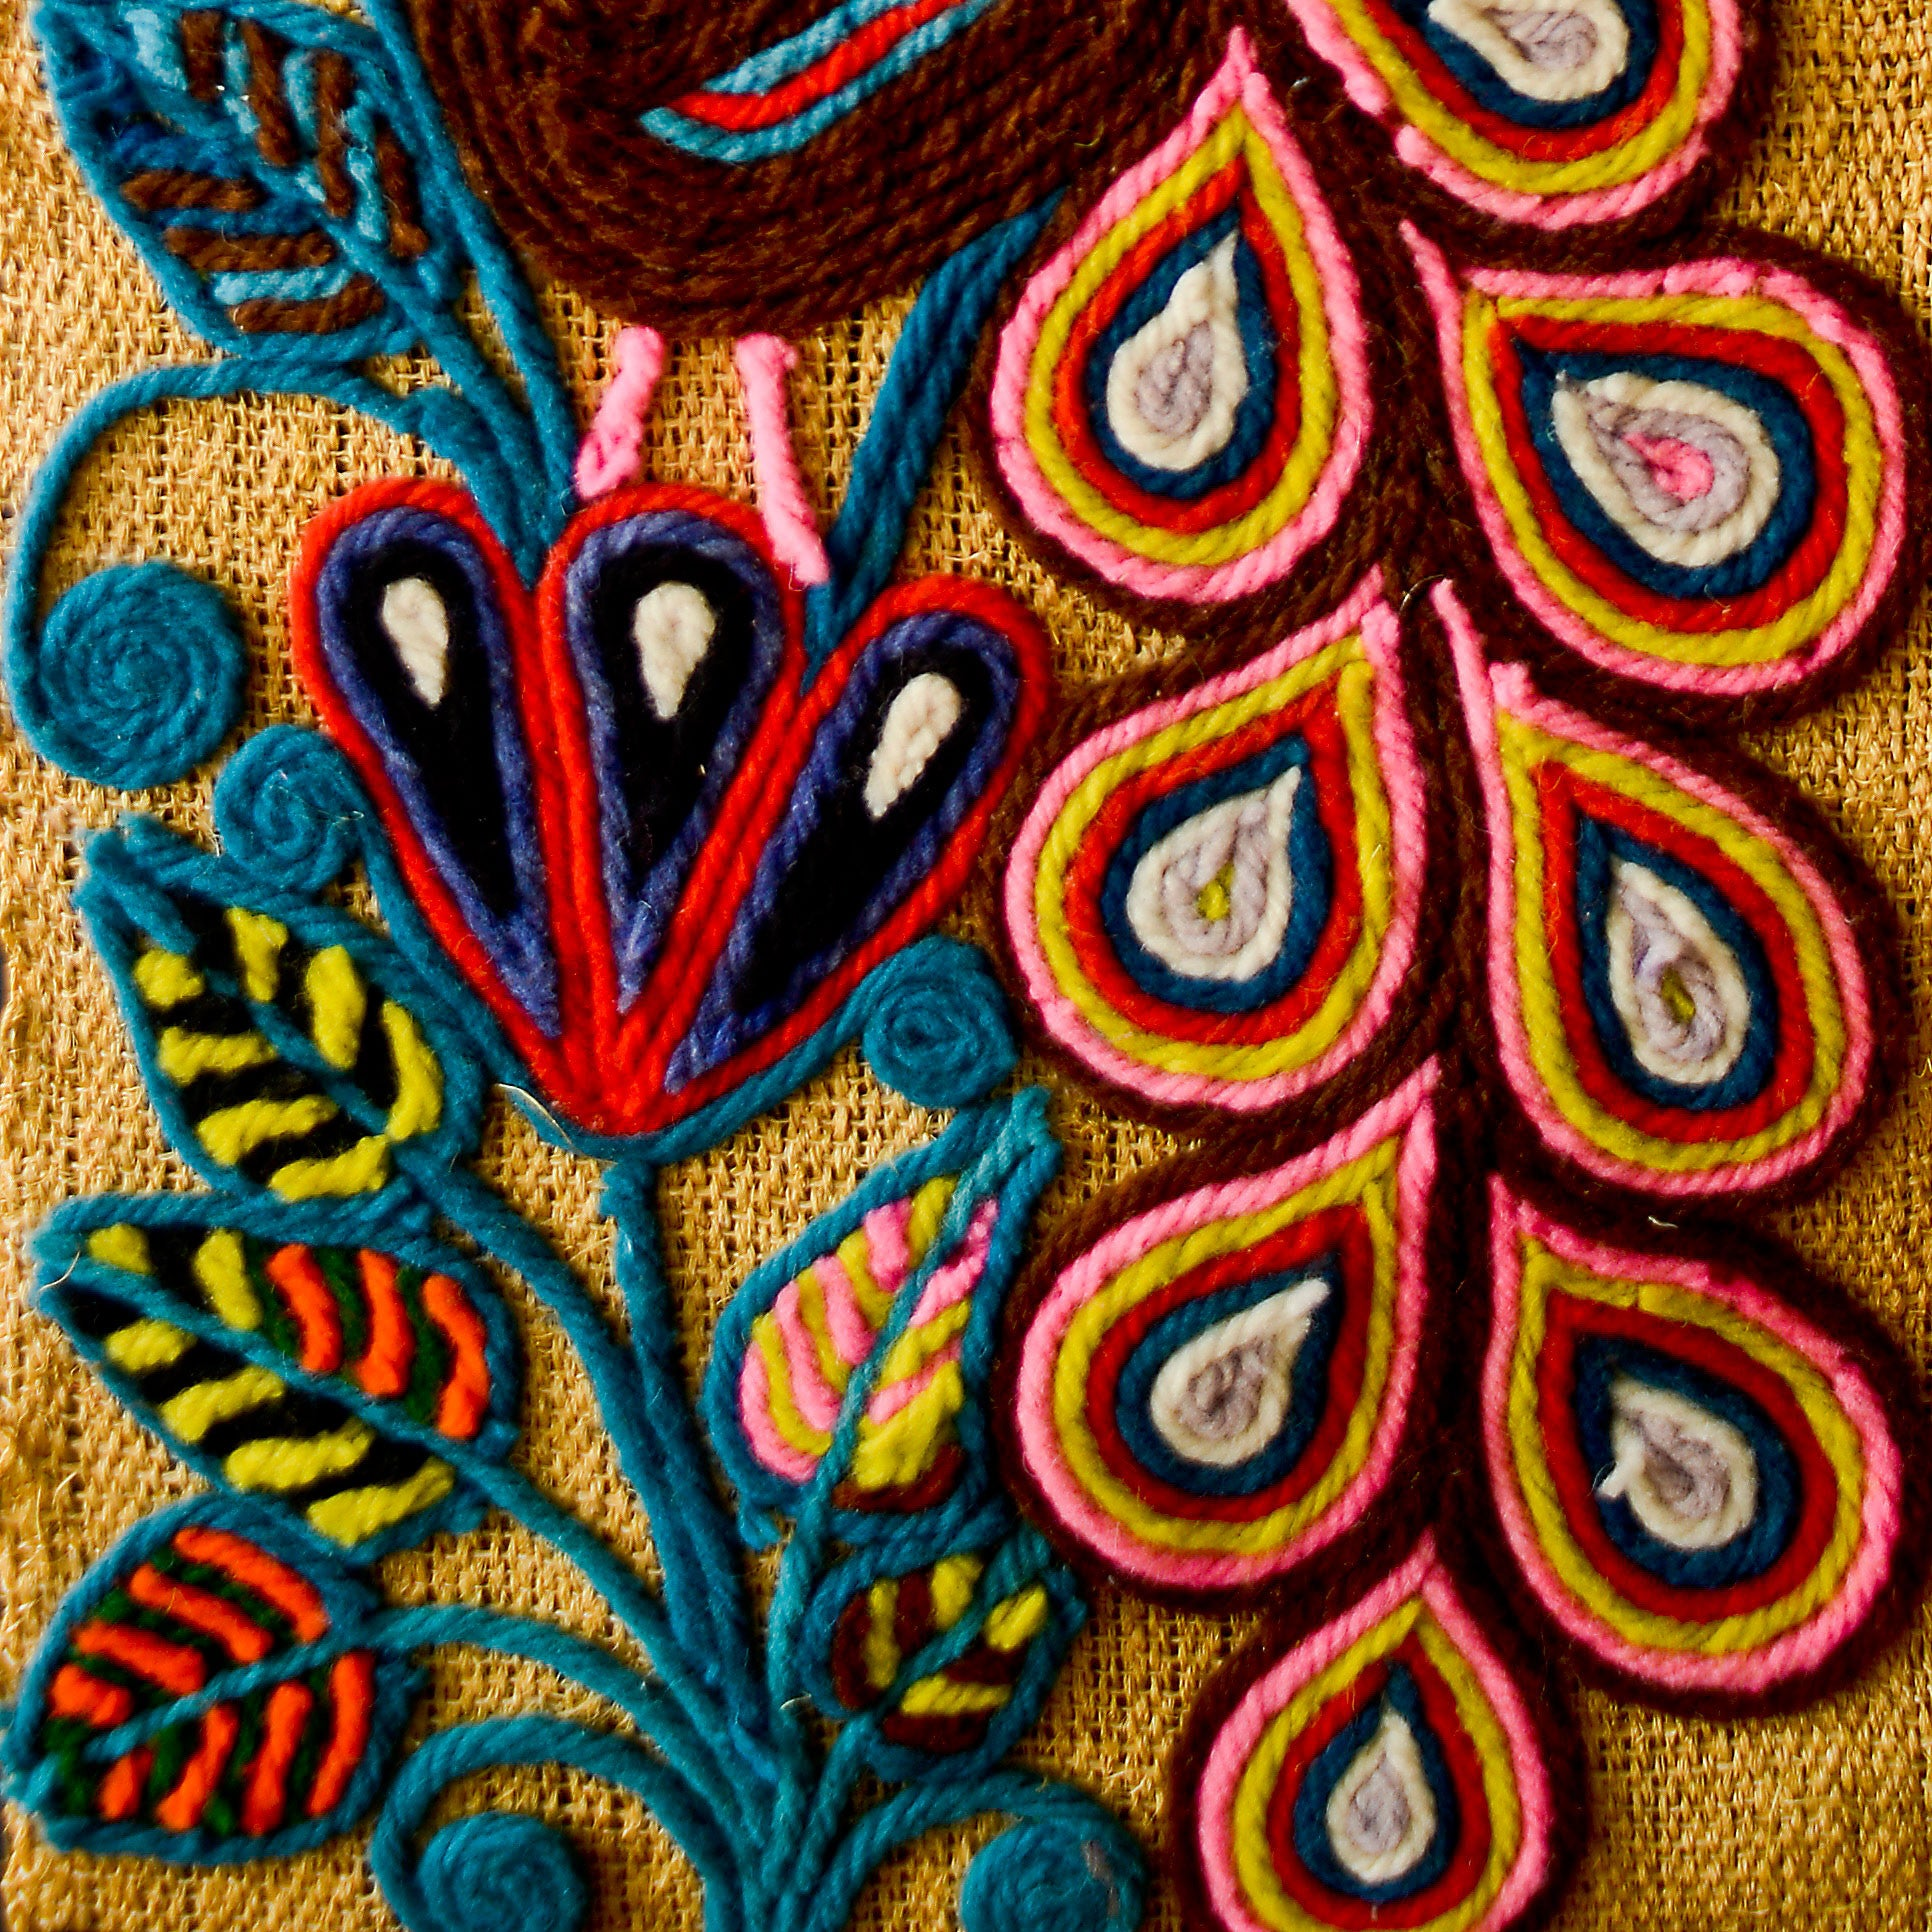 Design Yarn Art chula mexican folk art finder not keeper yarn closeup